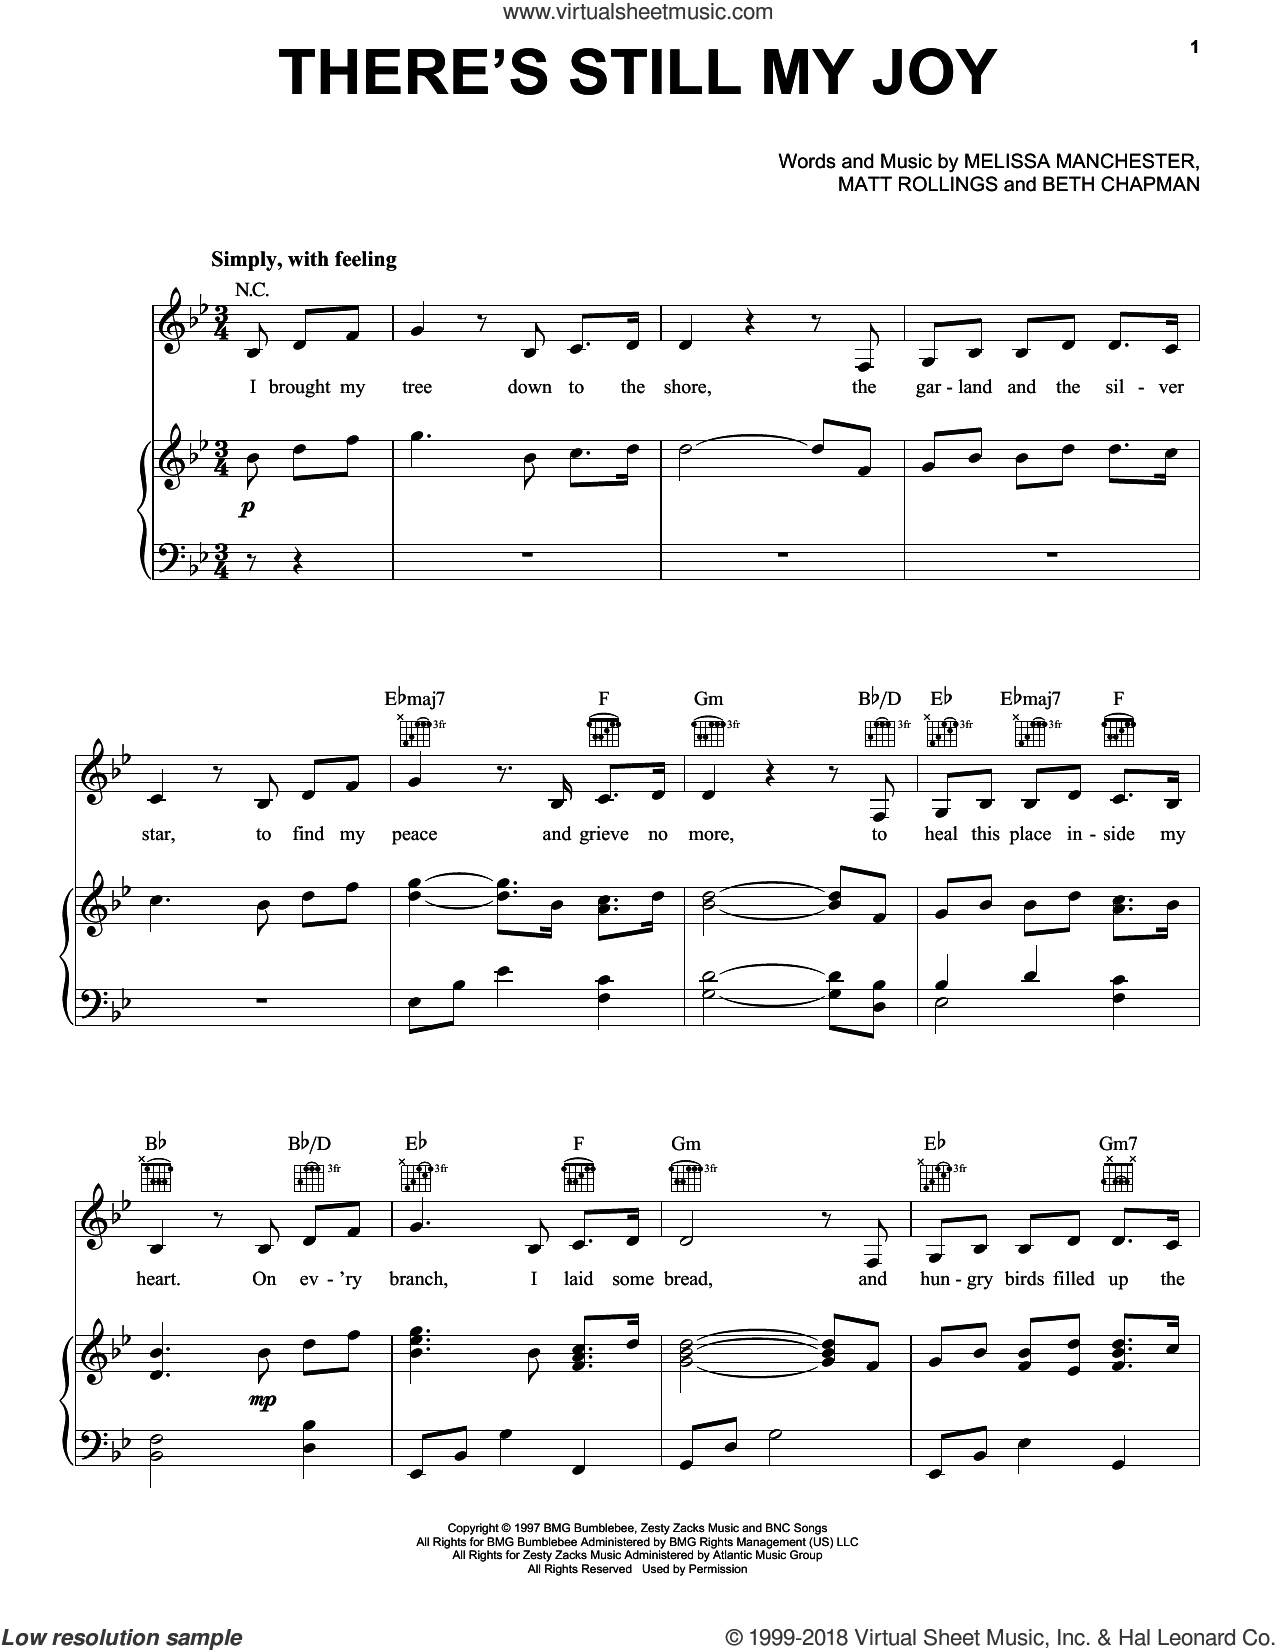 There's Still My Joy sheet music for voice, piano or guitar by Indigo Girls, Beth Chapman, Matt Rollings and Melissa Manchester, intermediate skill level